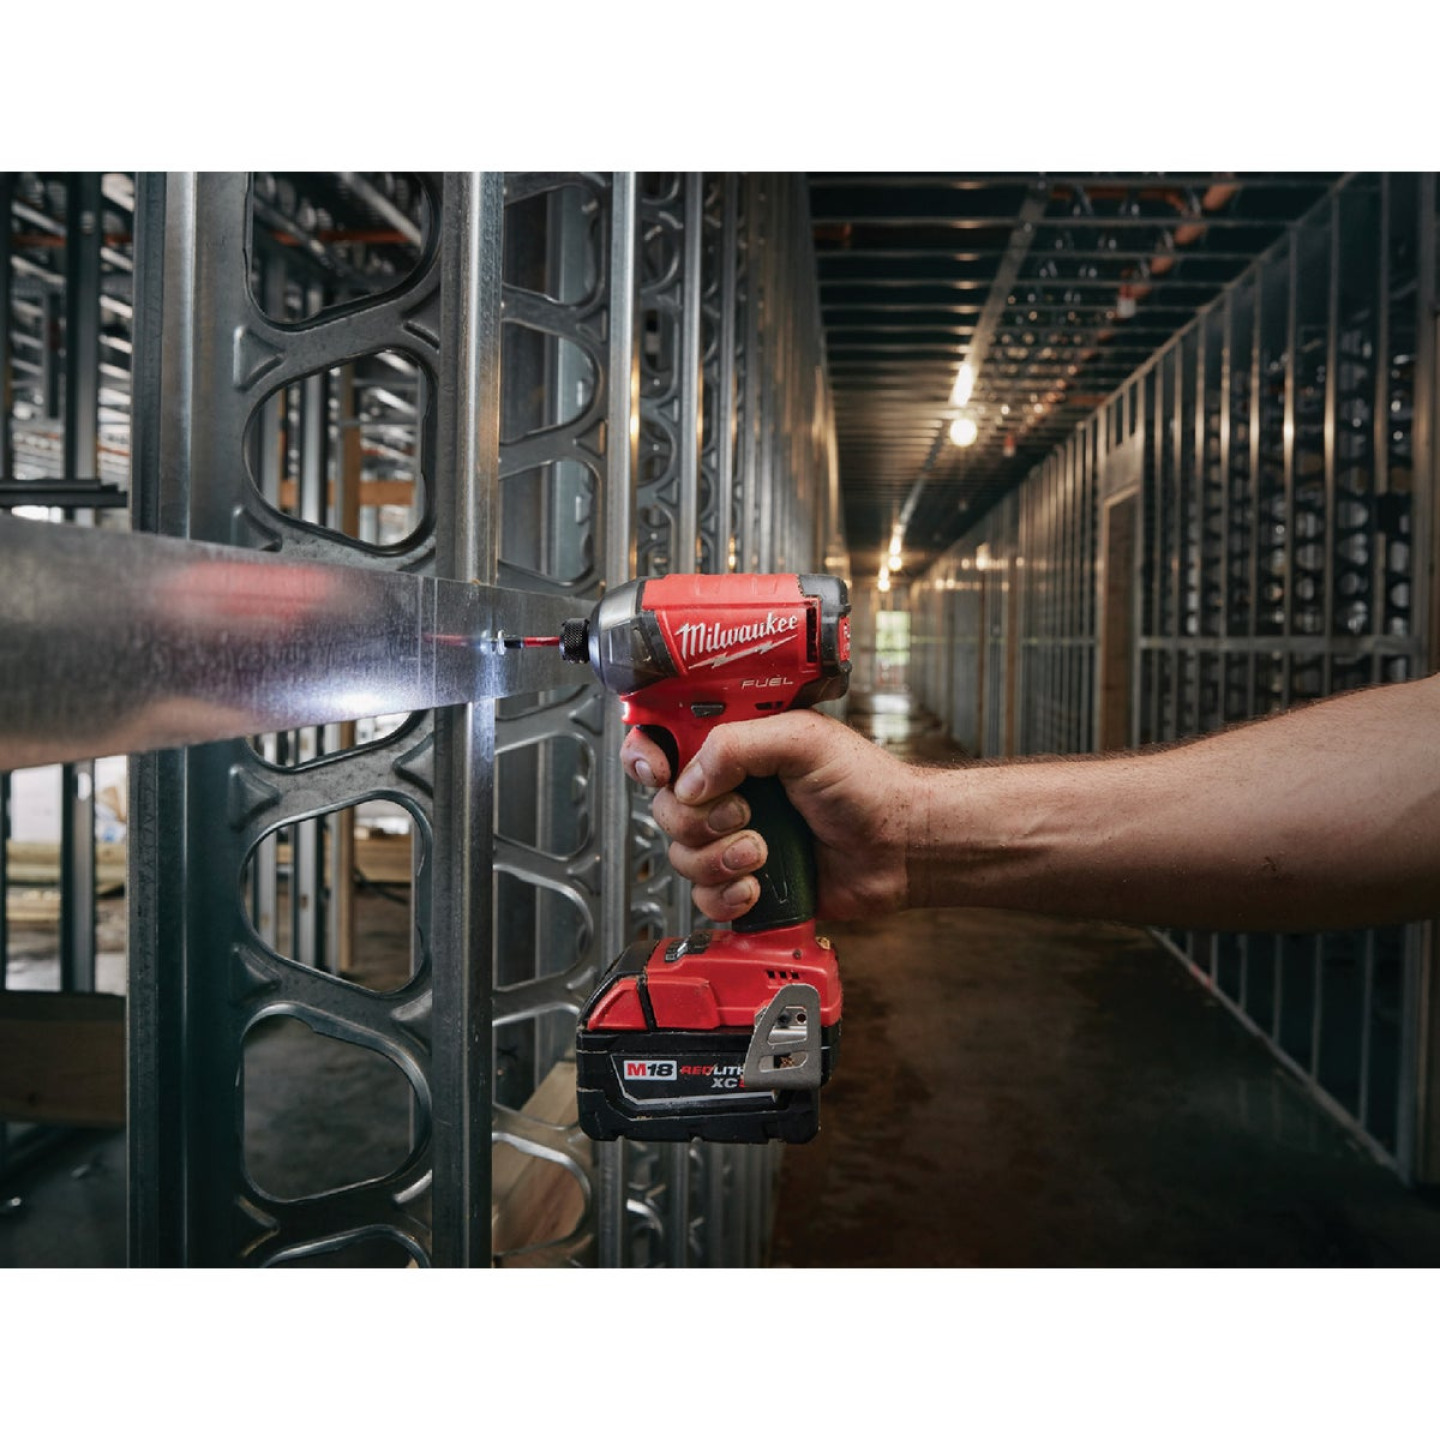 Milwaukee M18 FUEL SURGE 18 Volt Lithium-Ion Brushless 1/4 in. Hex Hydraulic Cordless Impact Driver (Bare Tool) Image 2